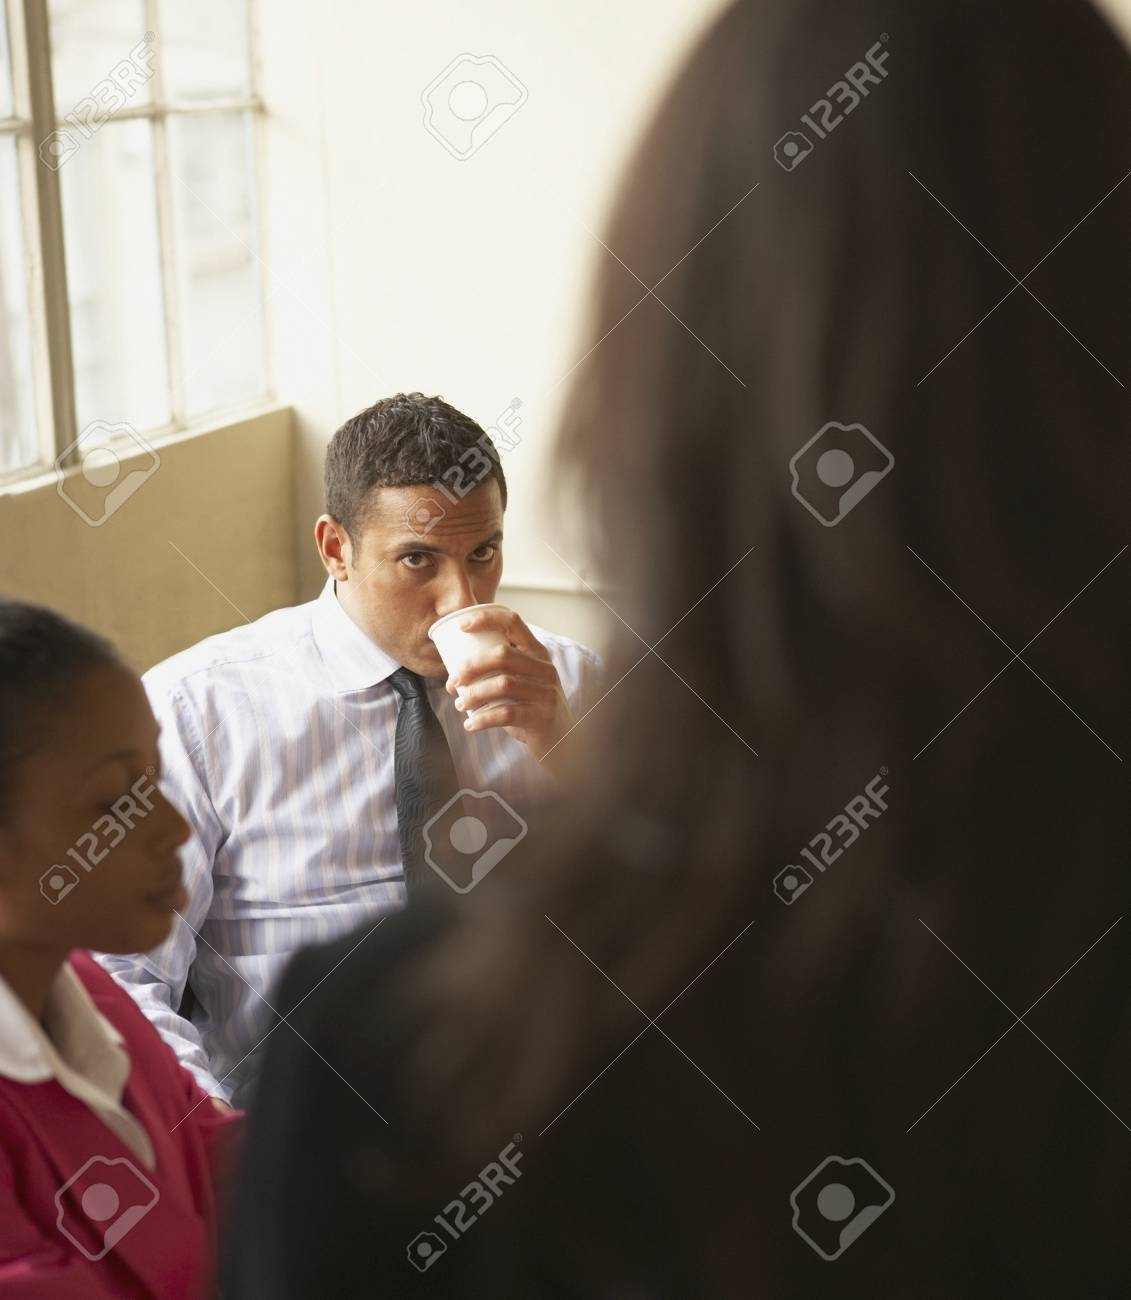 Businessman drinking coffee in an office Stock Photo - 16047281